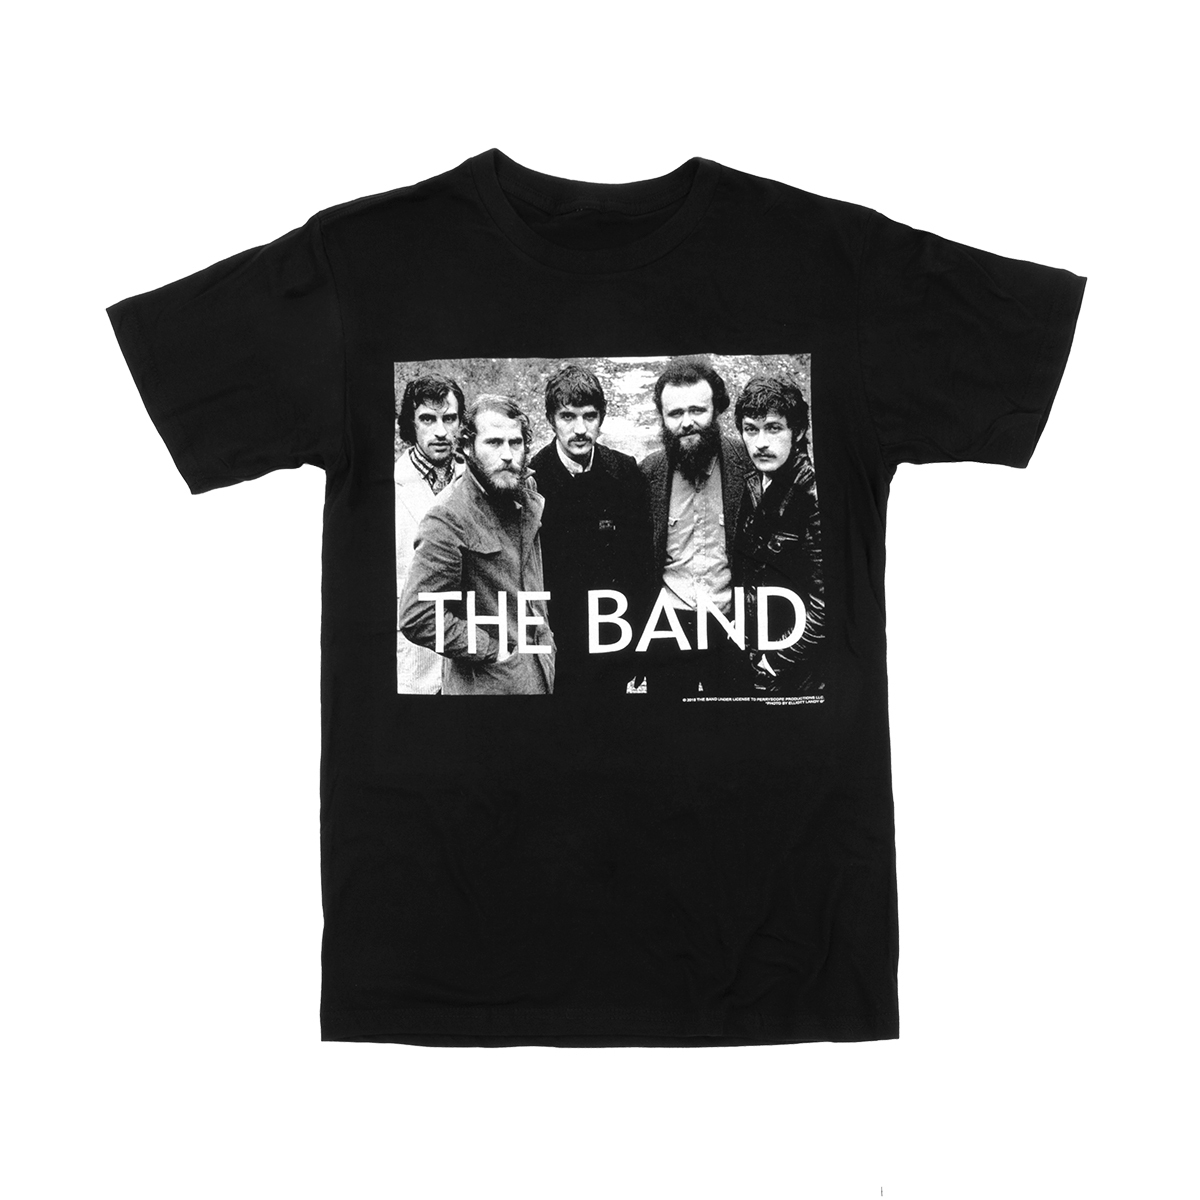 The Band Vintage Faded Photo T-shirt